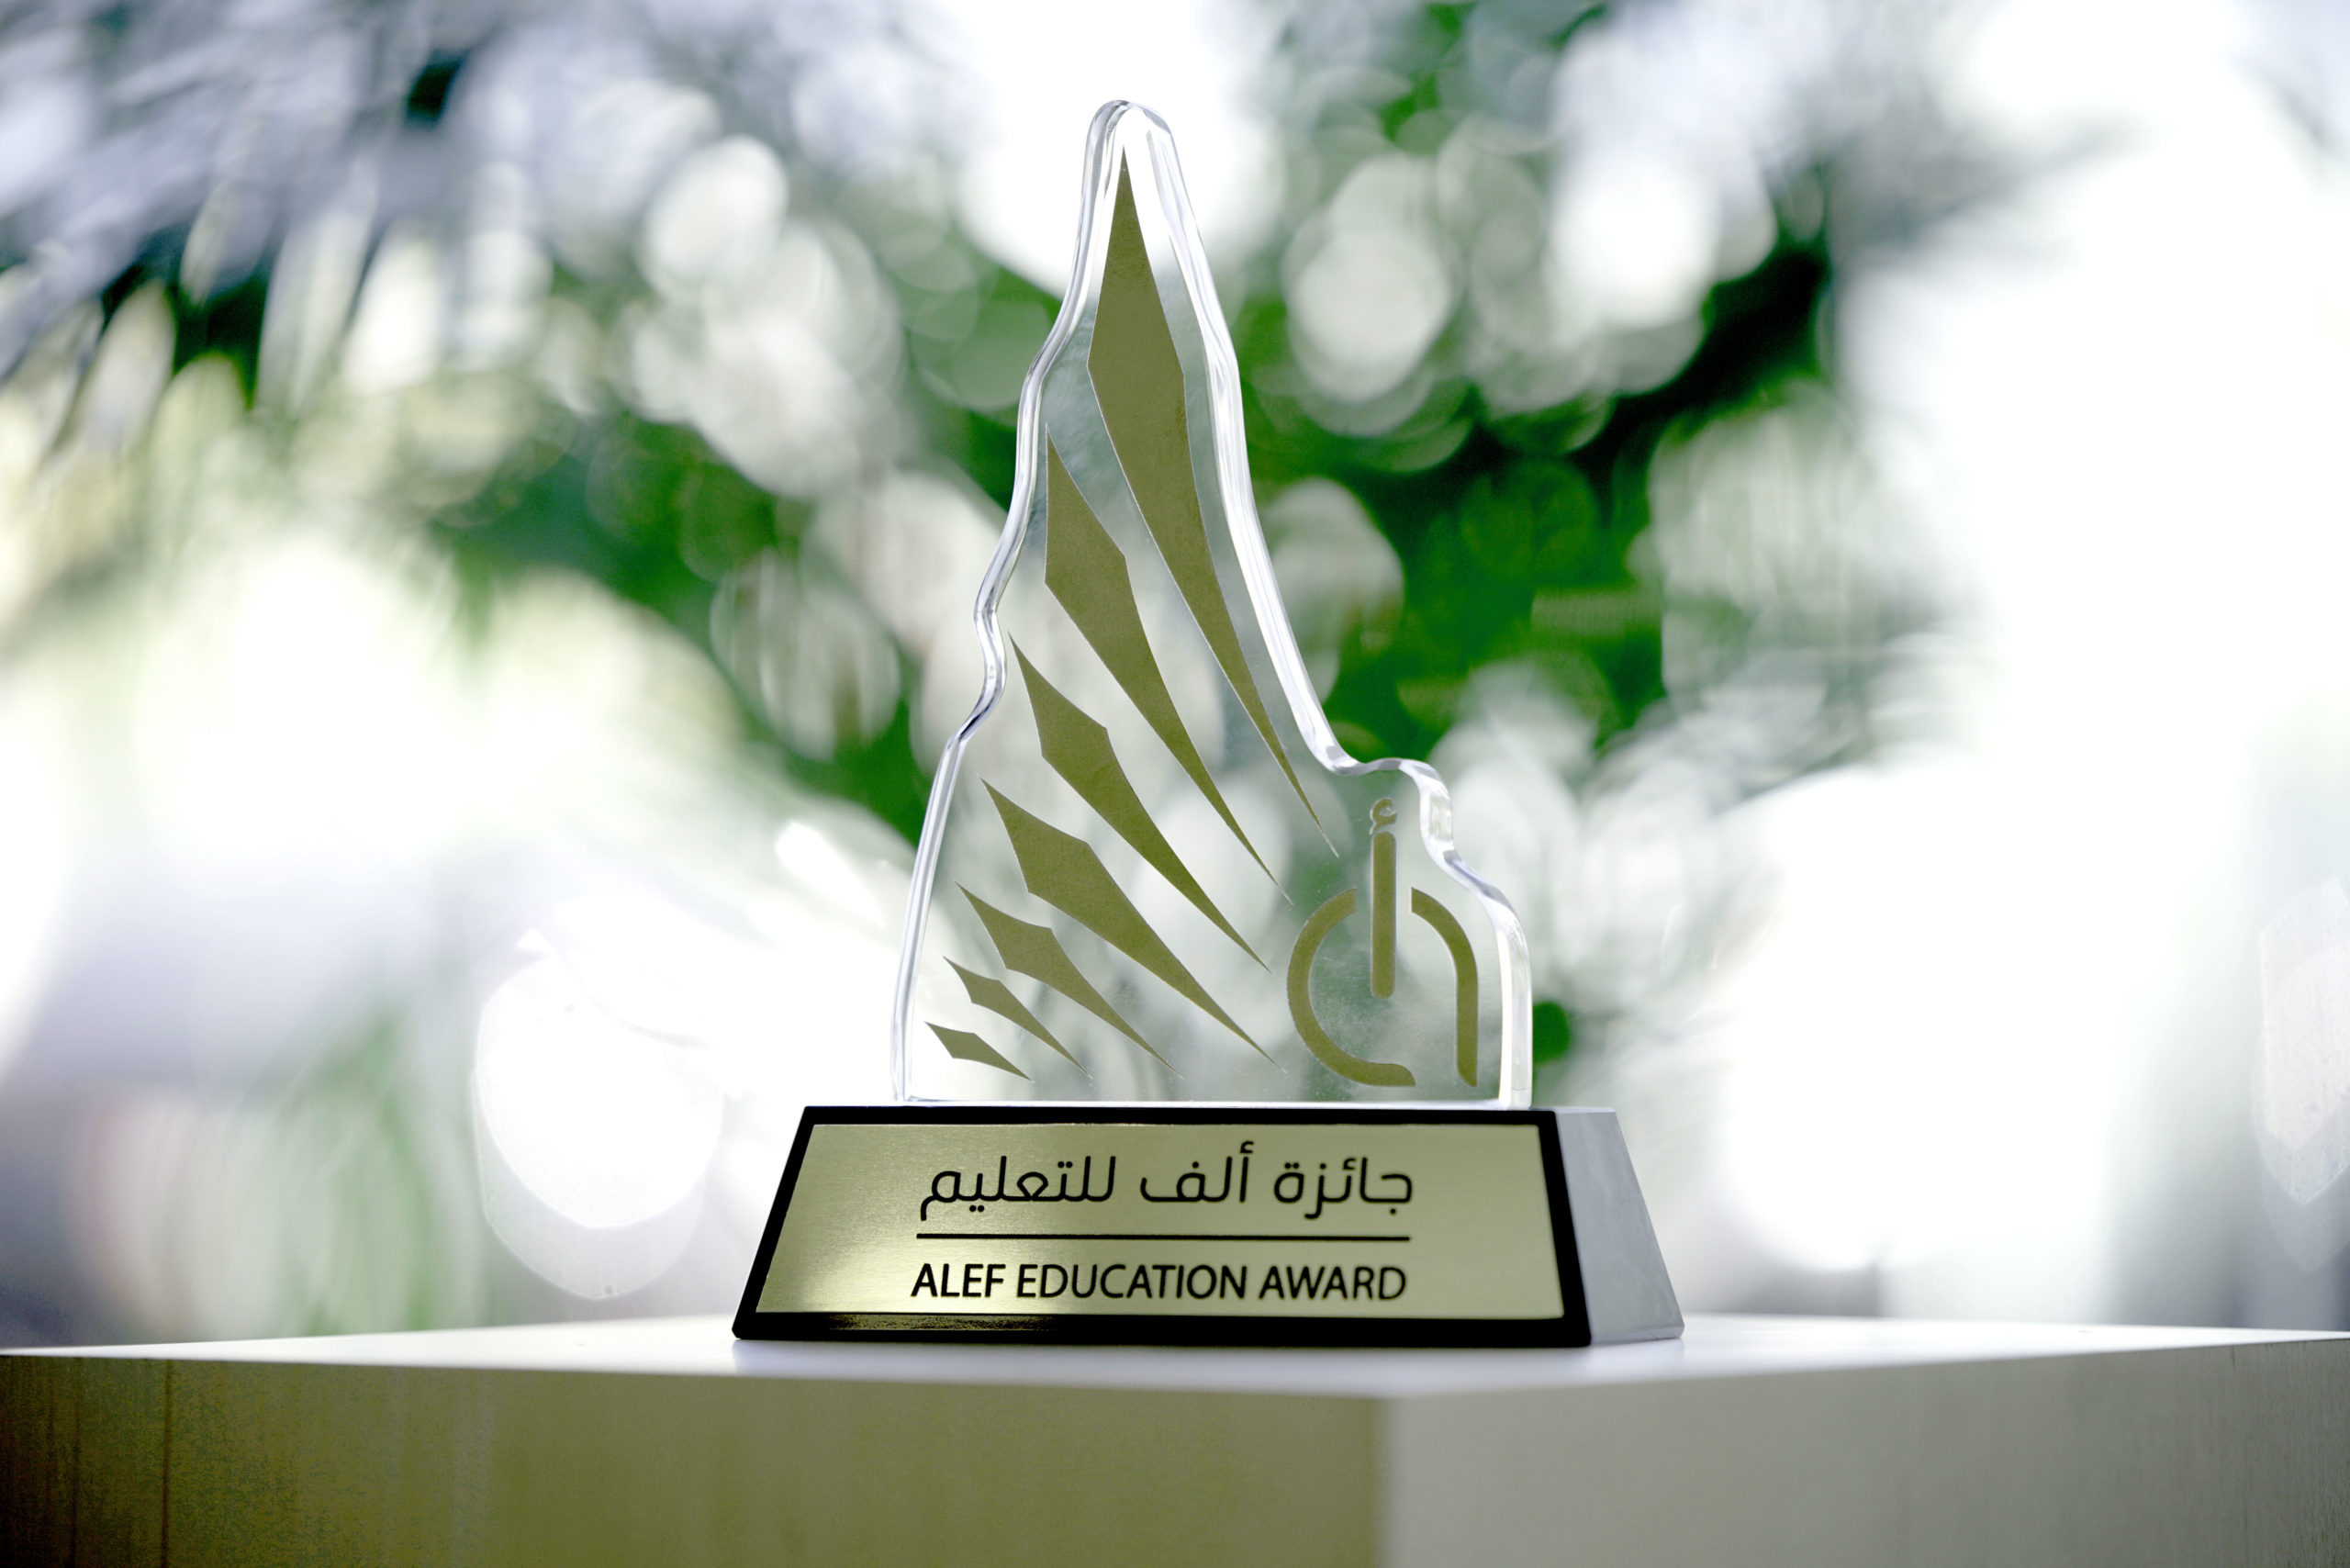 Alef Education Award to acknowledge and celebrate excellence in implementing Alef Platform across government schools in the UAE